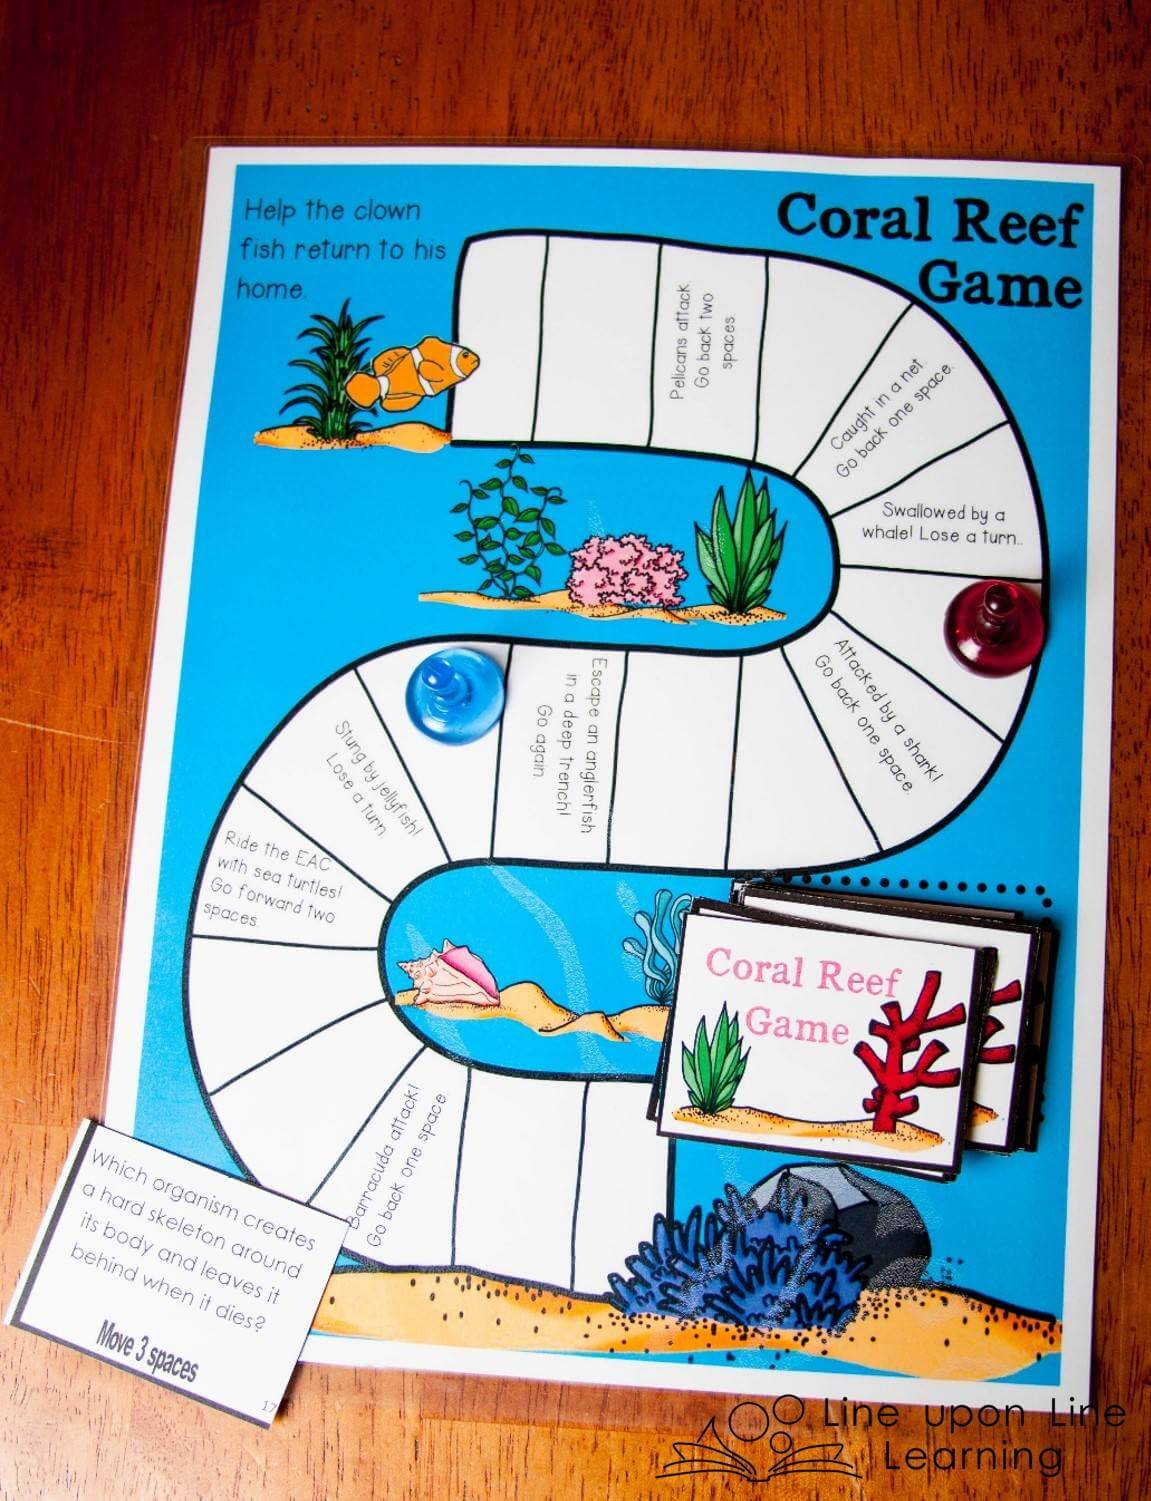 The coral reefs board game tests what we learned in a fun game!